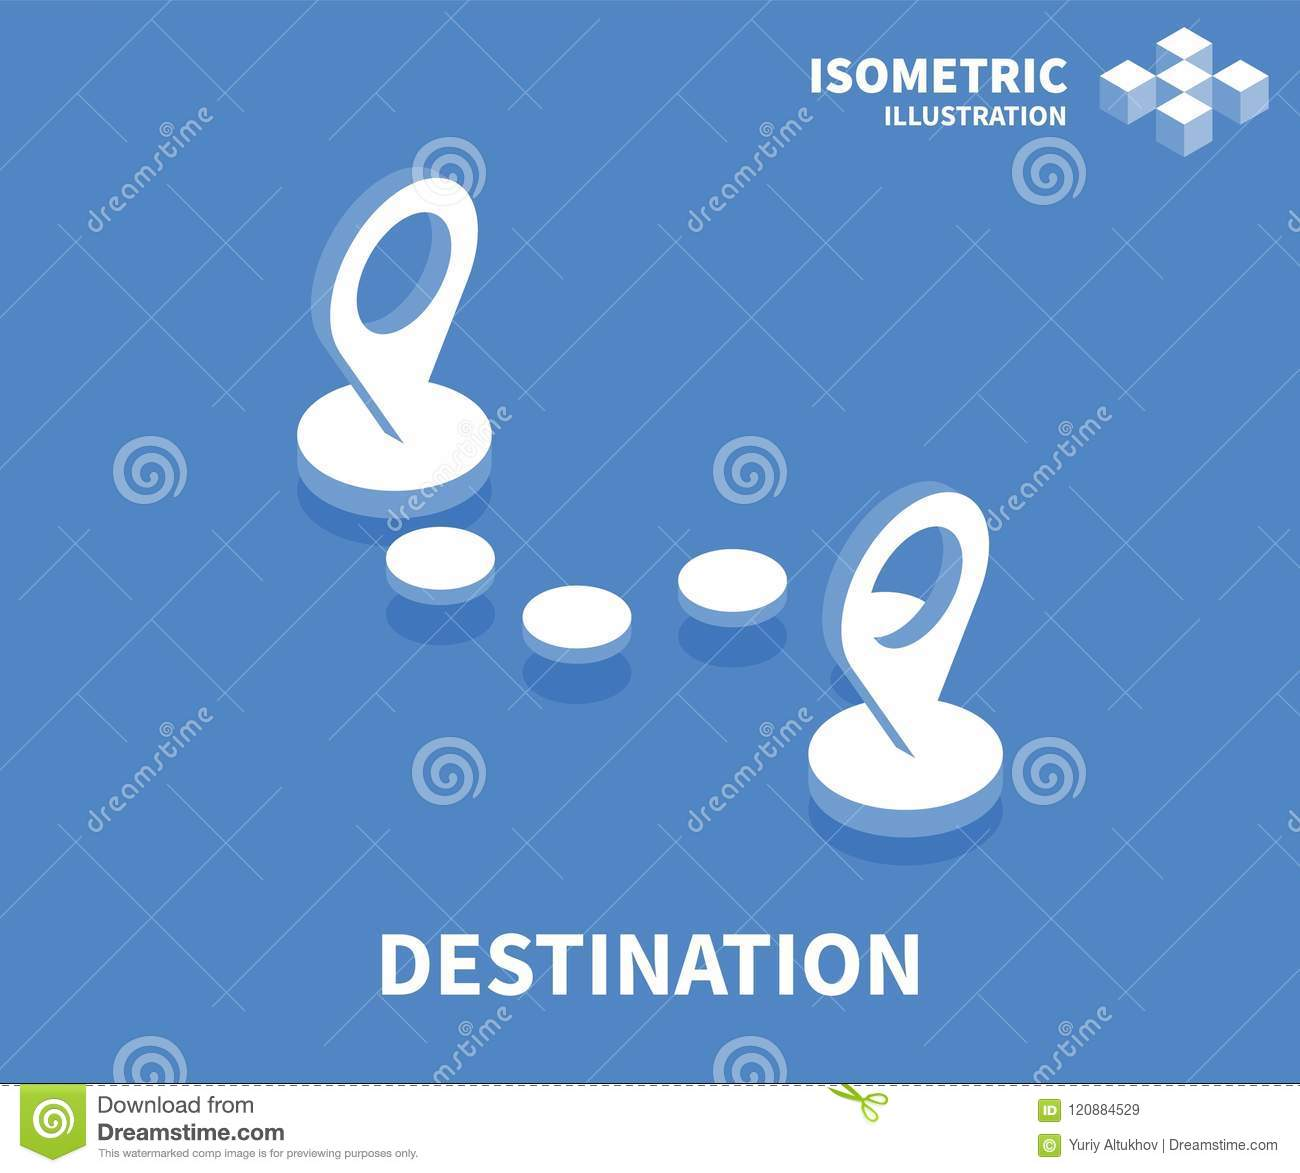 Destination icon. Isometric template for web design in flat 3D style. Vector illustration